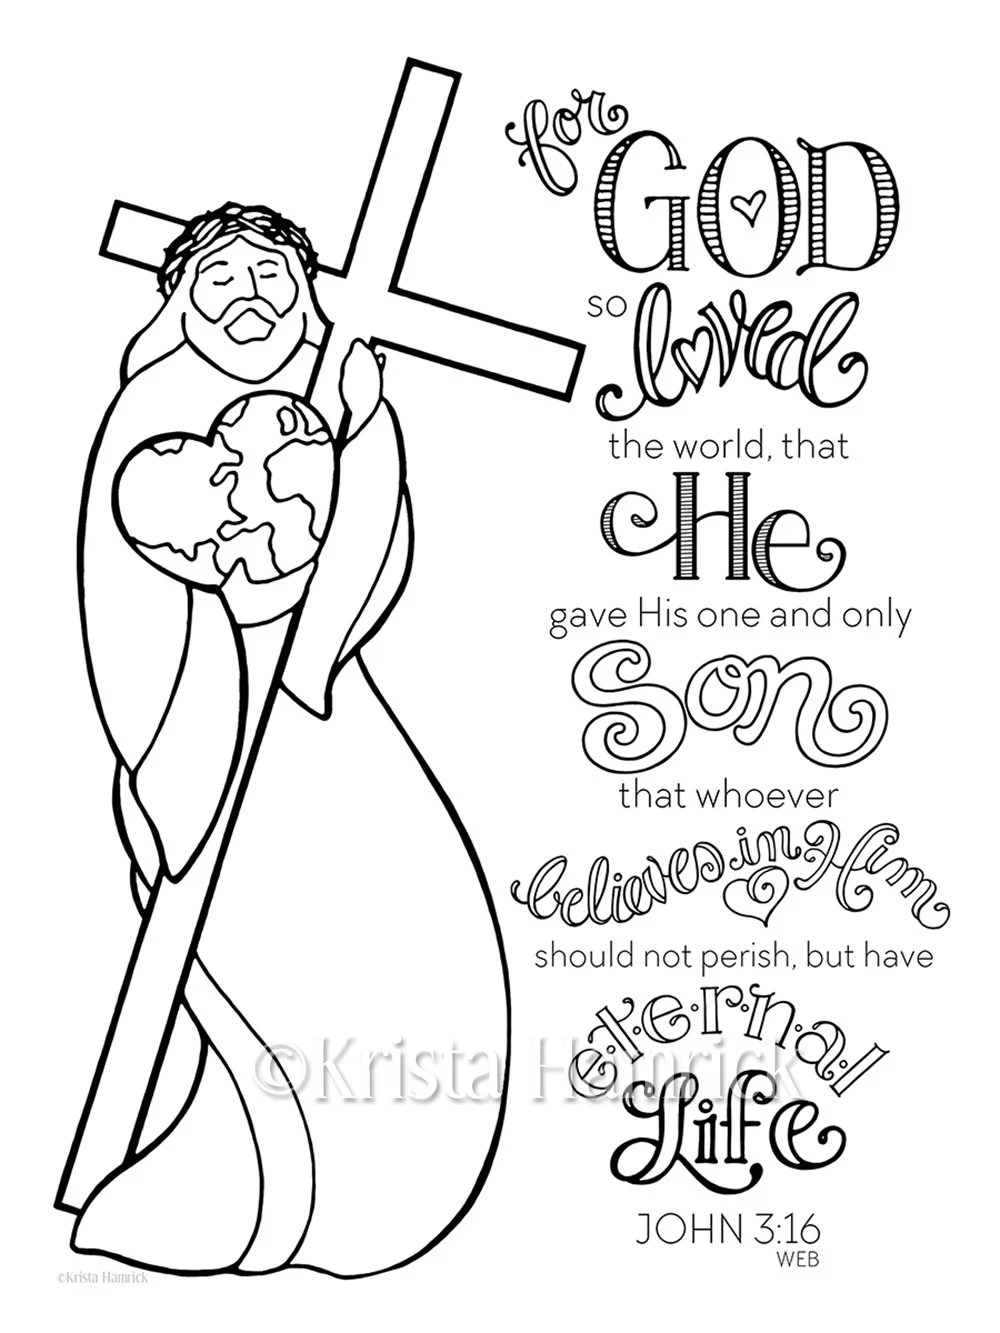 God So Loved the World coloring page 8.5X11 Bible